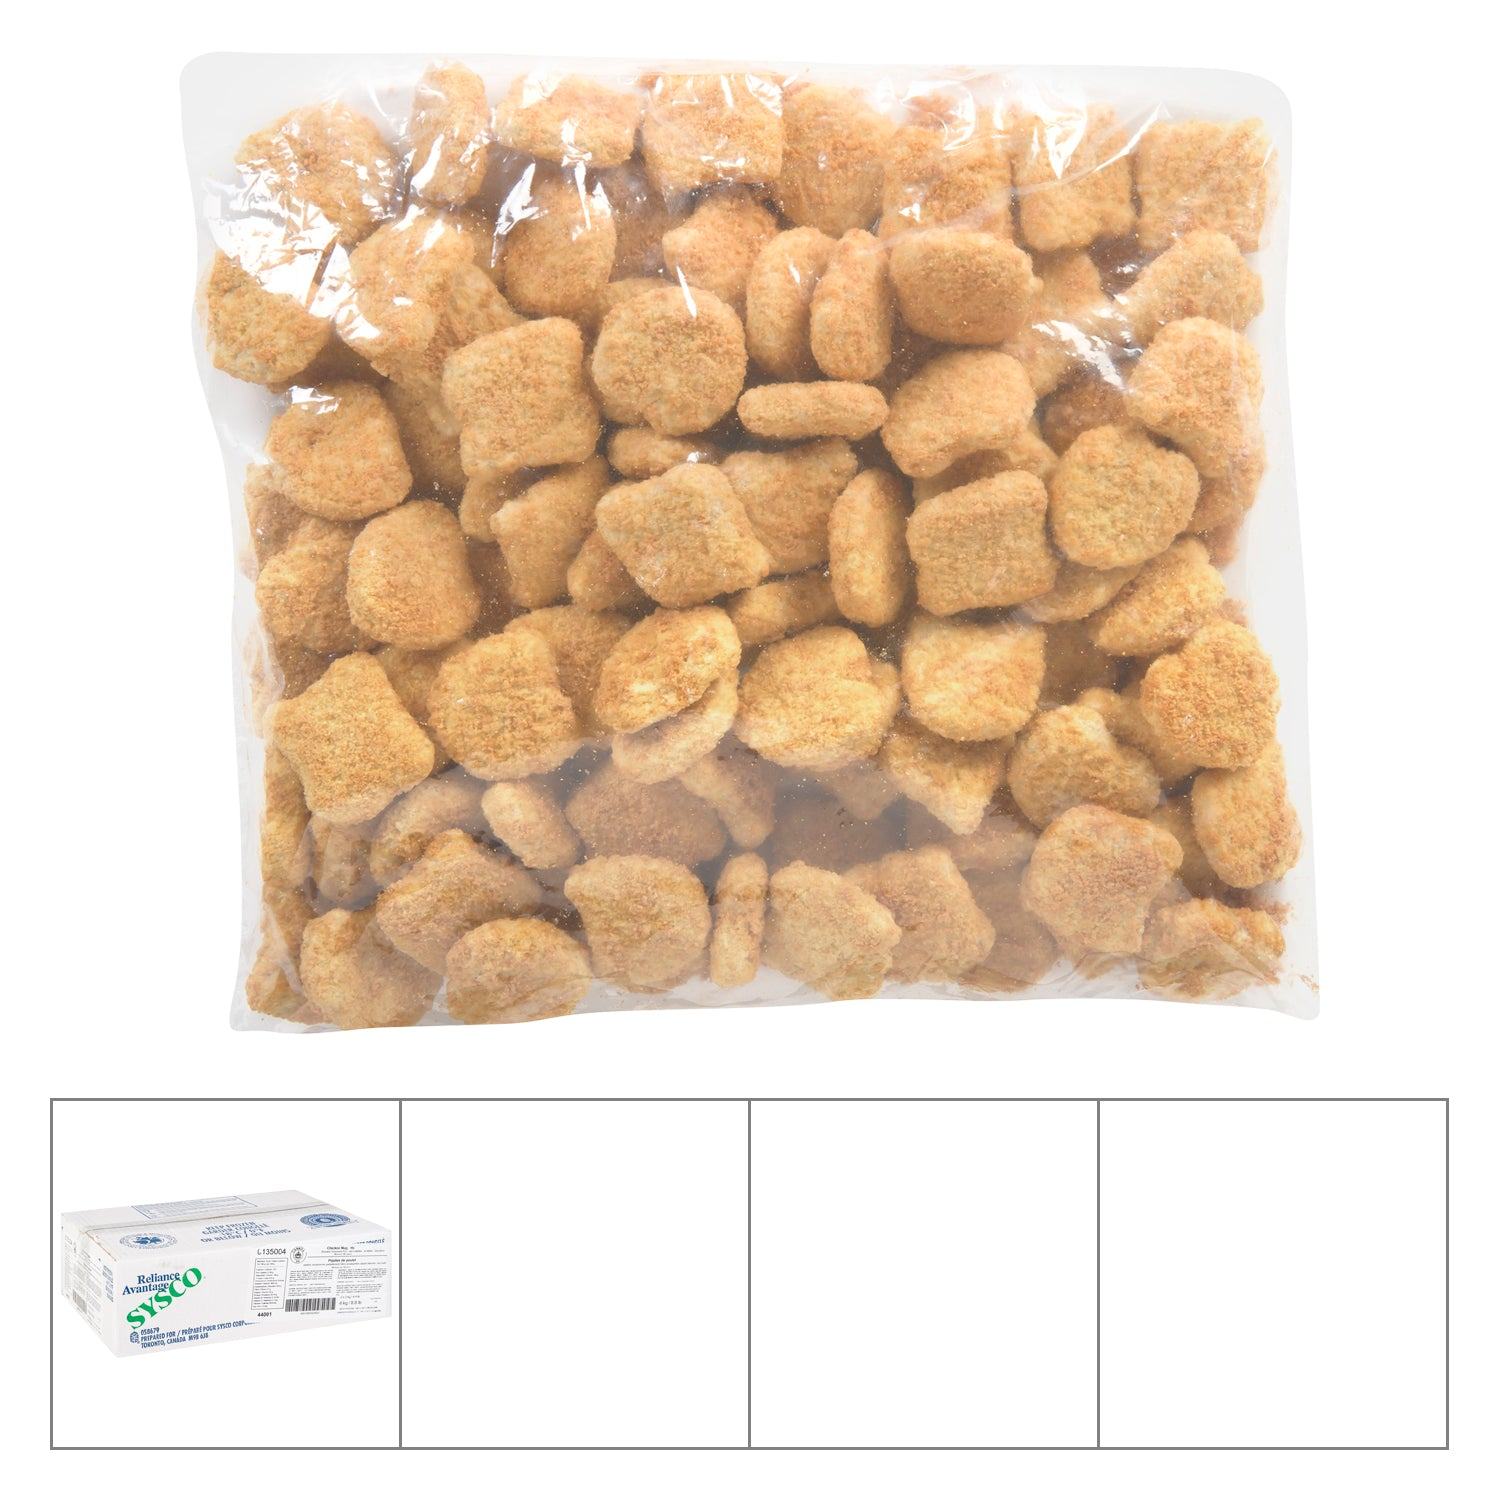 Sysco Reliance Frozen Breaded Chicken Nugget 100% White Meat 2 kg - 2 Pack [$11.00/kg]